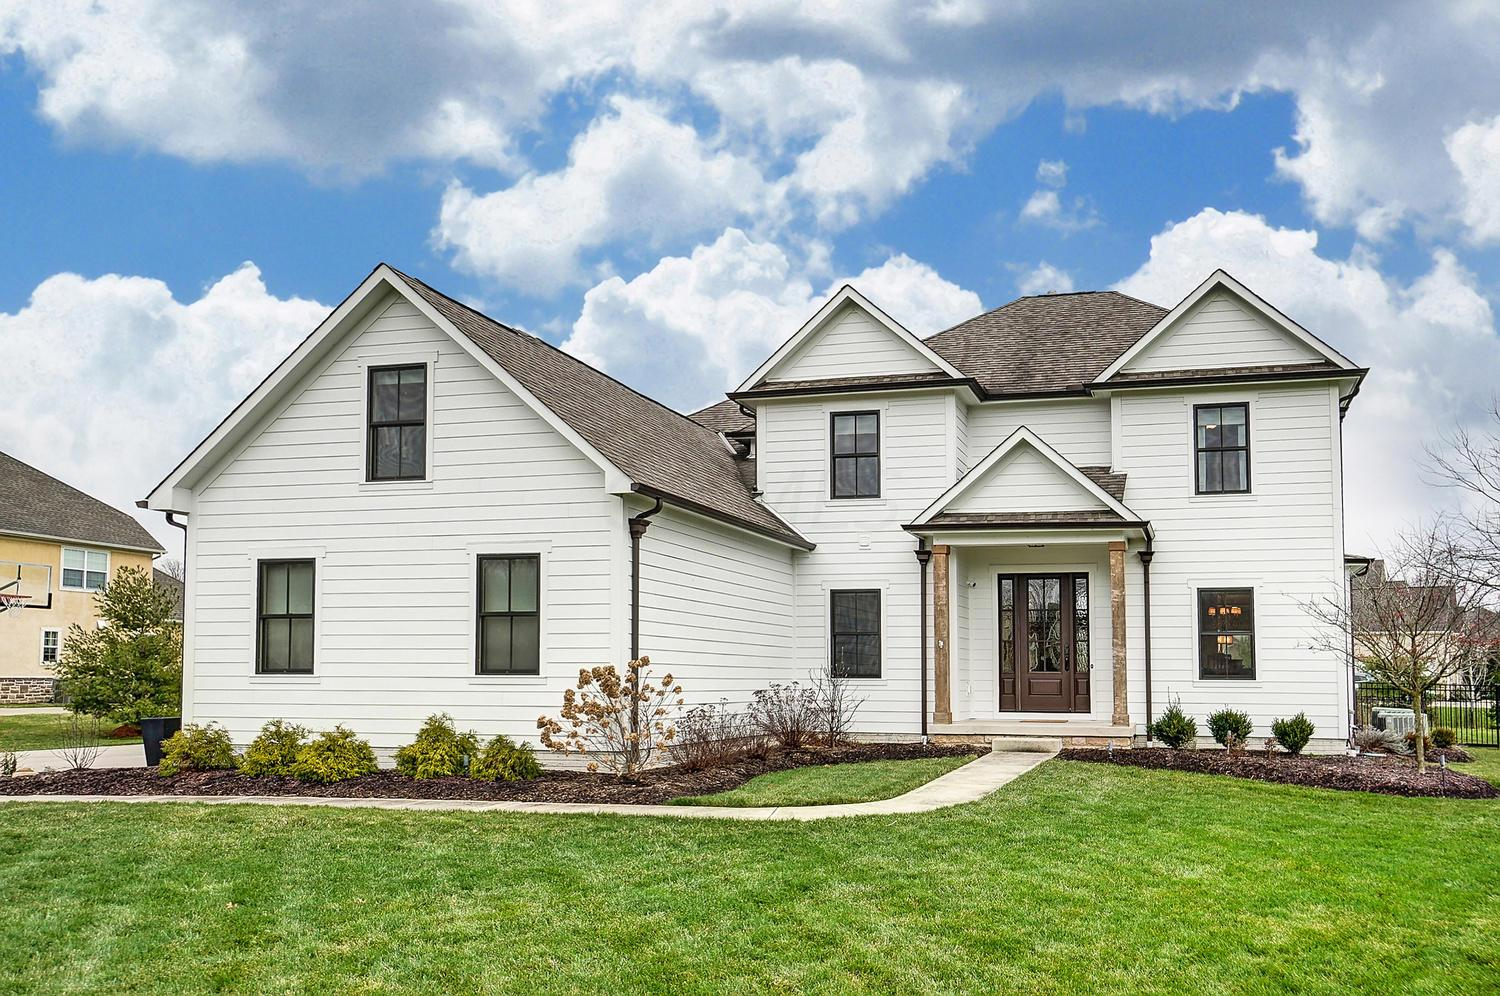 5710 Fox Chase Trail, Galena, Ohio 43021, 4 Bedrooms Bedrooms, ,6 BathroomsBathrooms,Residential,For Sale,Fox Chase,221000423